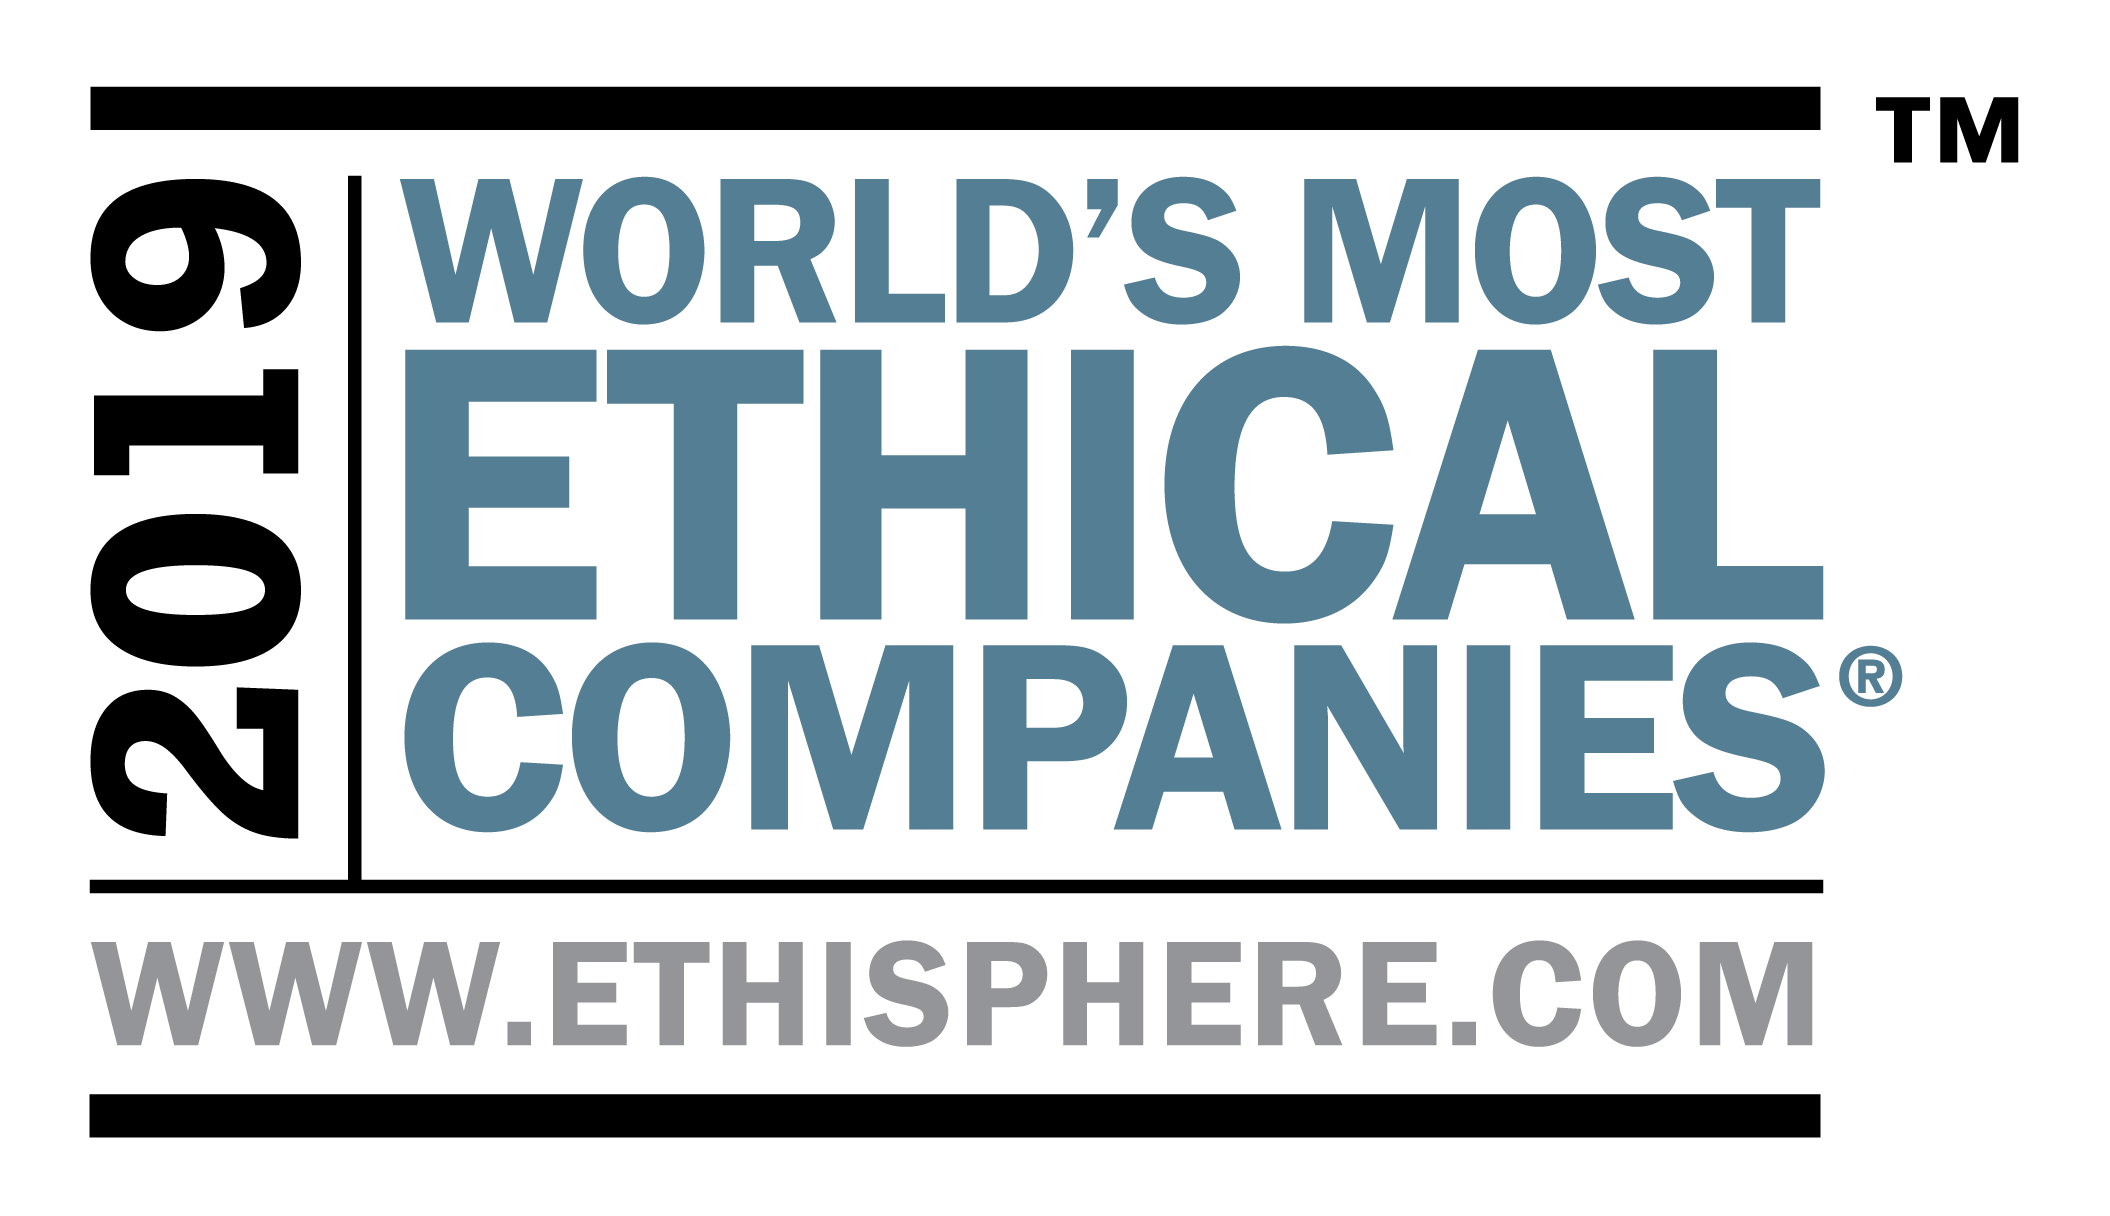 Worlds Most Ethical Companies 2019